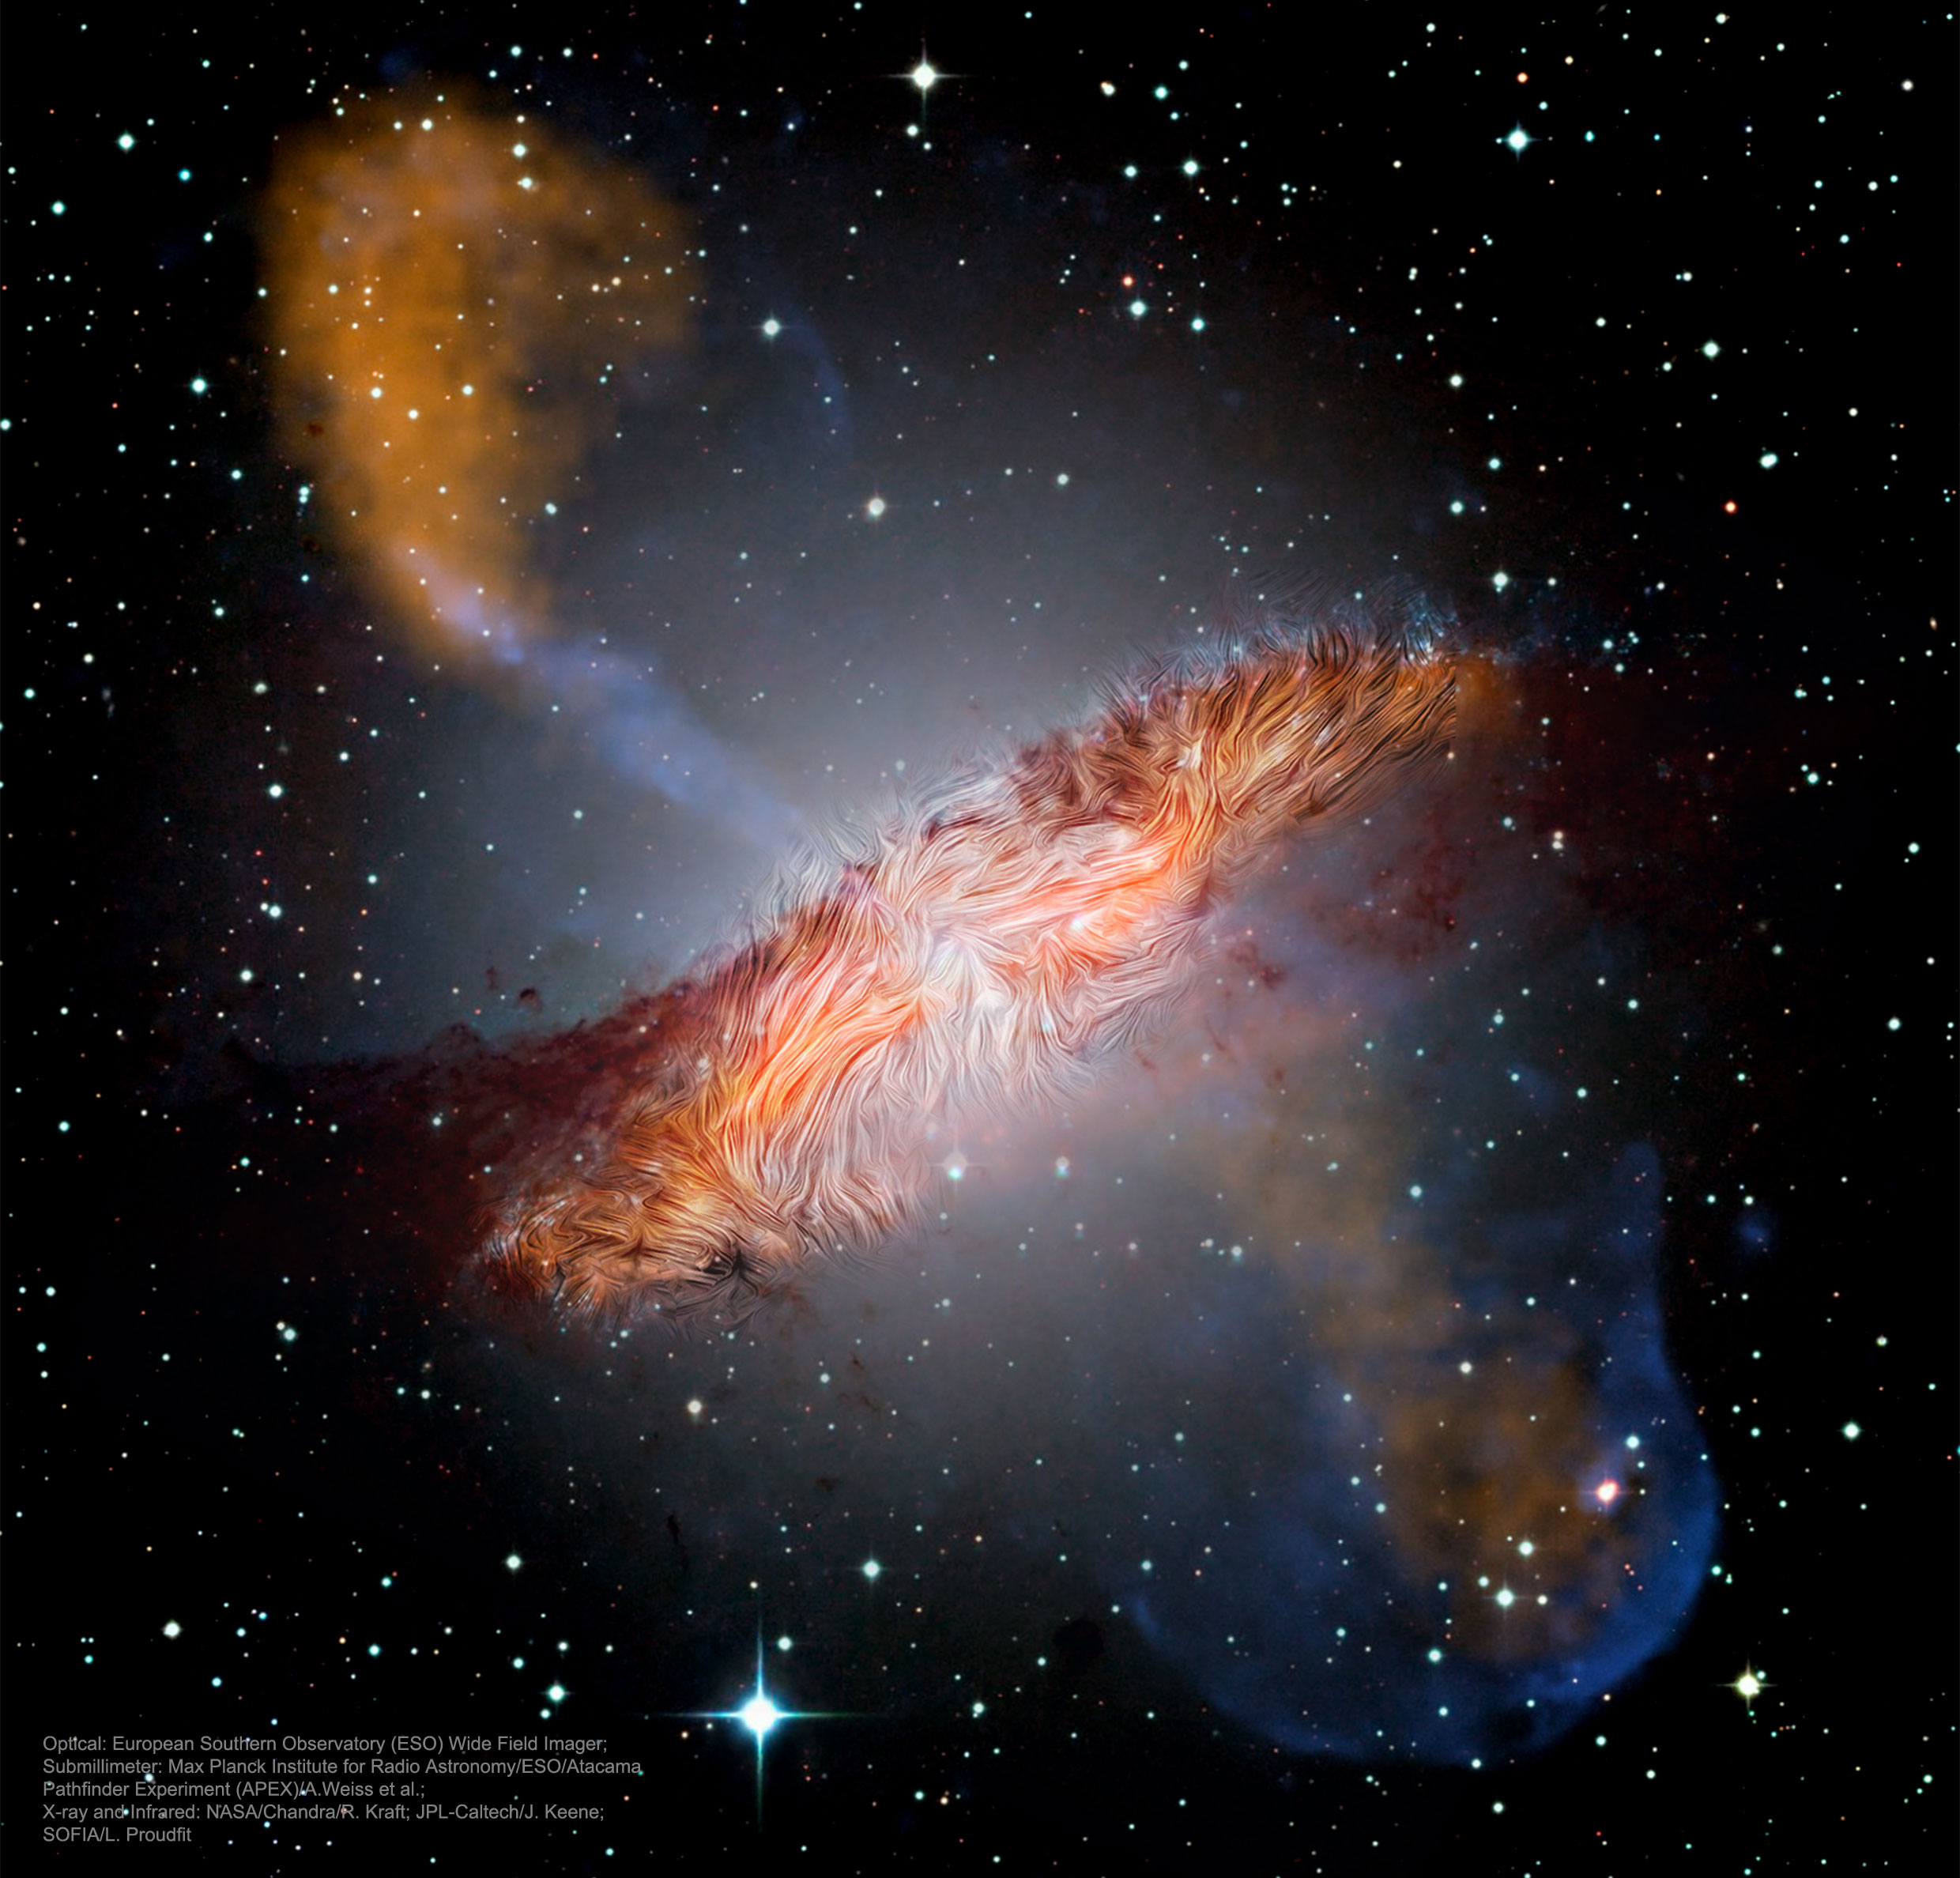 Centaurus A's Warped Magnetic Fields